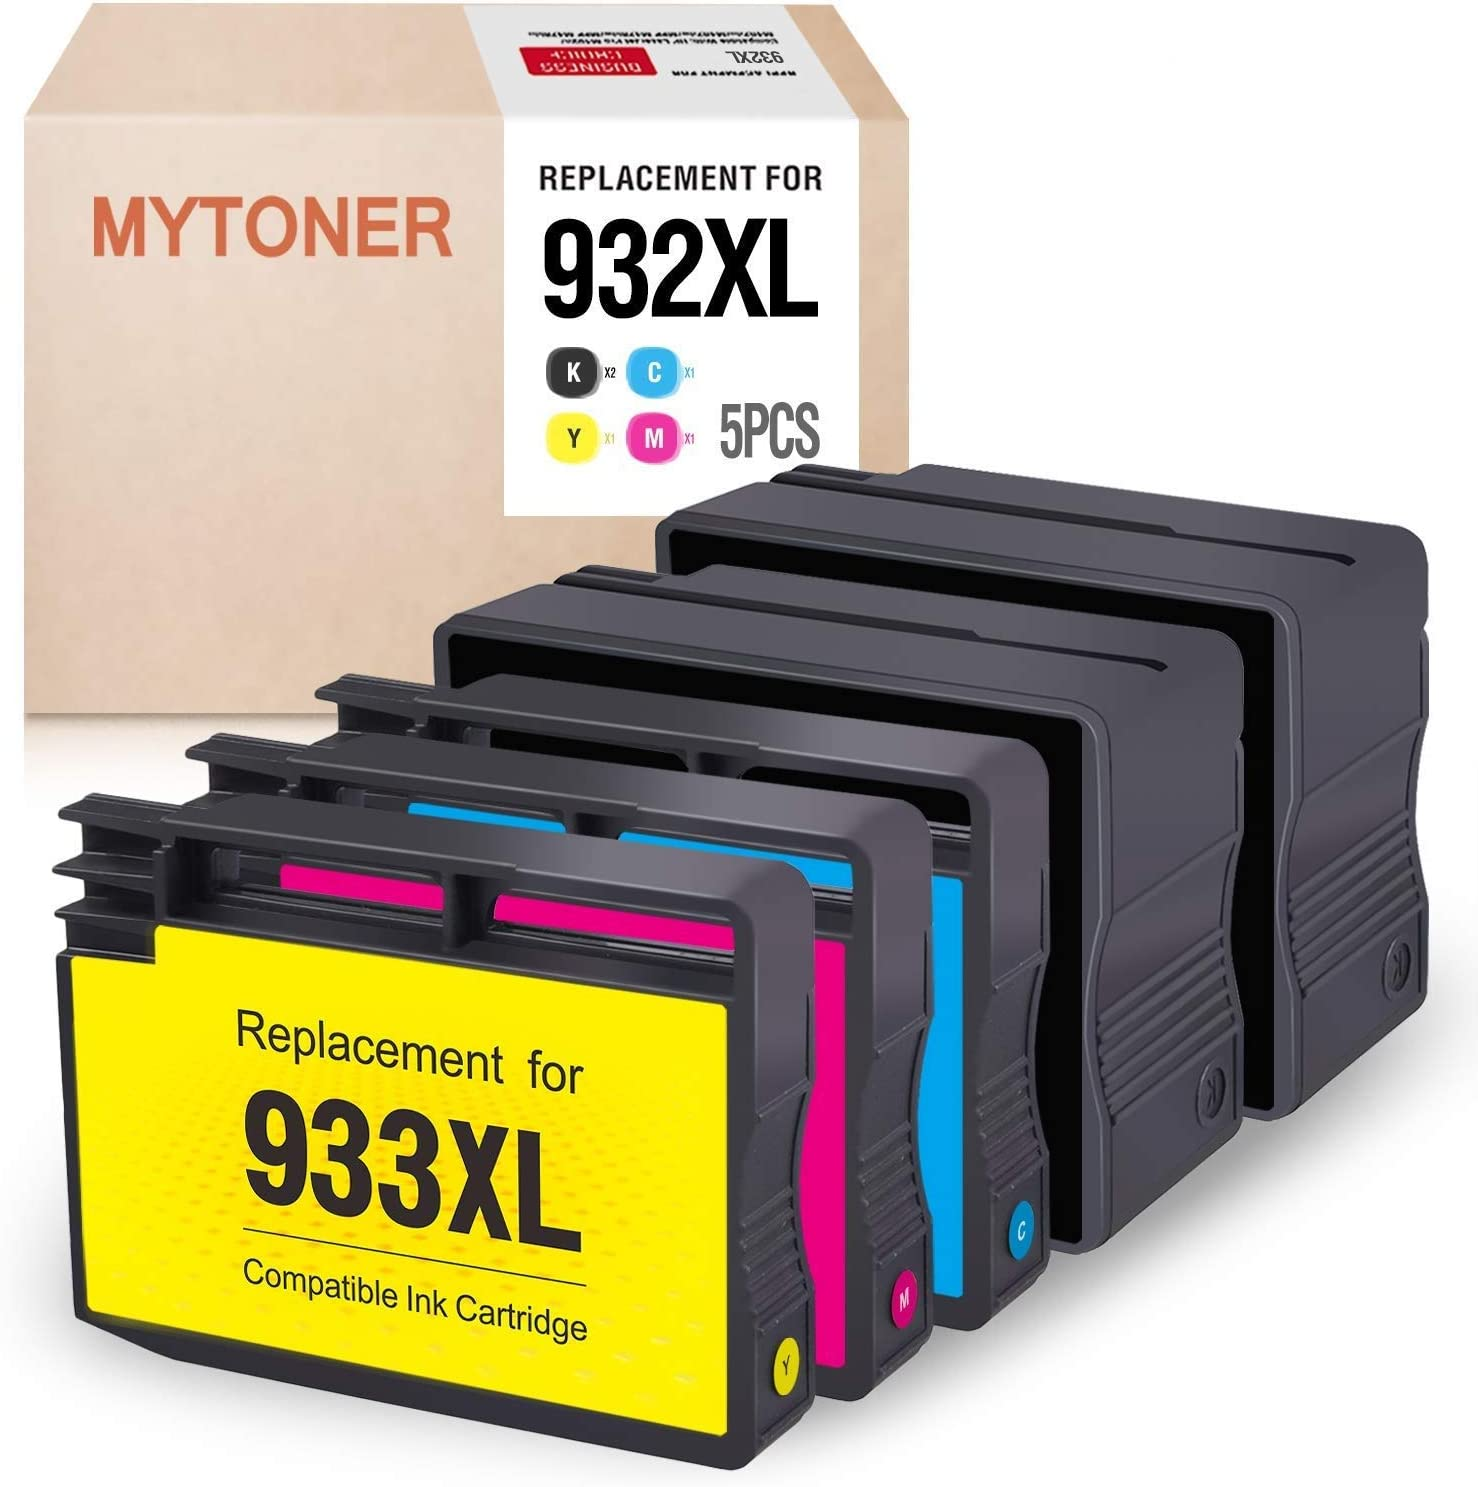 MYTONER Compatible Ink Cartridge Replacement for HP 932XL 933XL 932 933 Combo Pack (2 Black, 1 Cyan, 1 Magenta, 1 Yellow, 5-Pack)